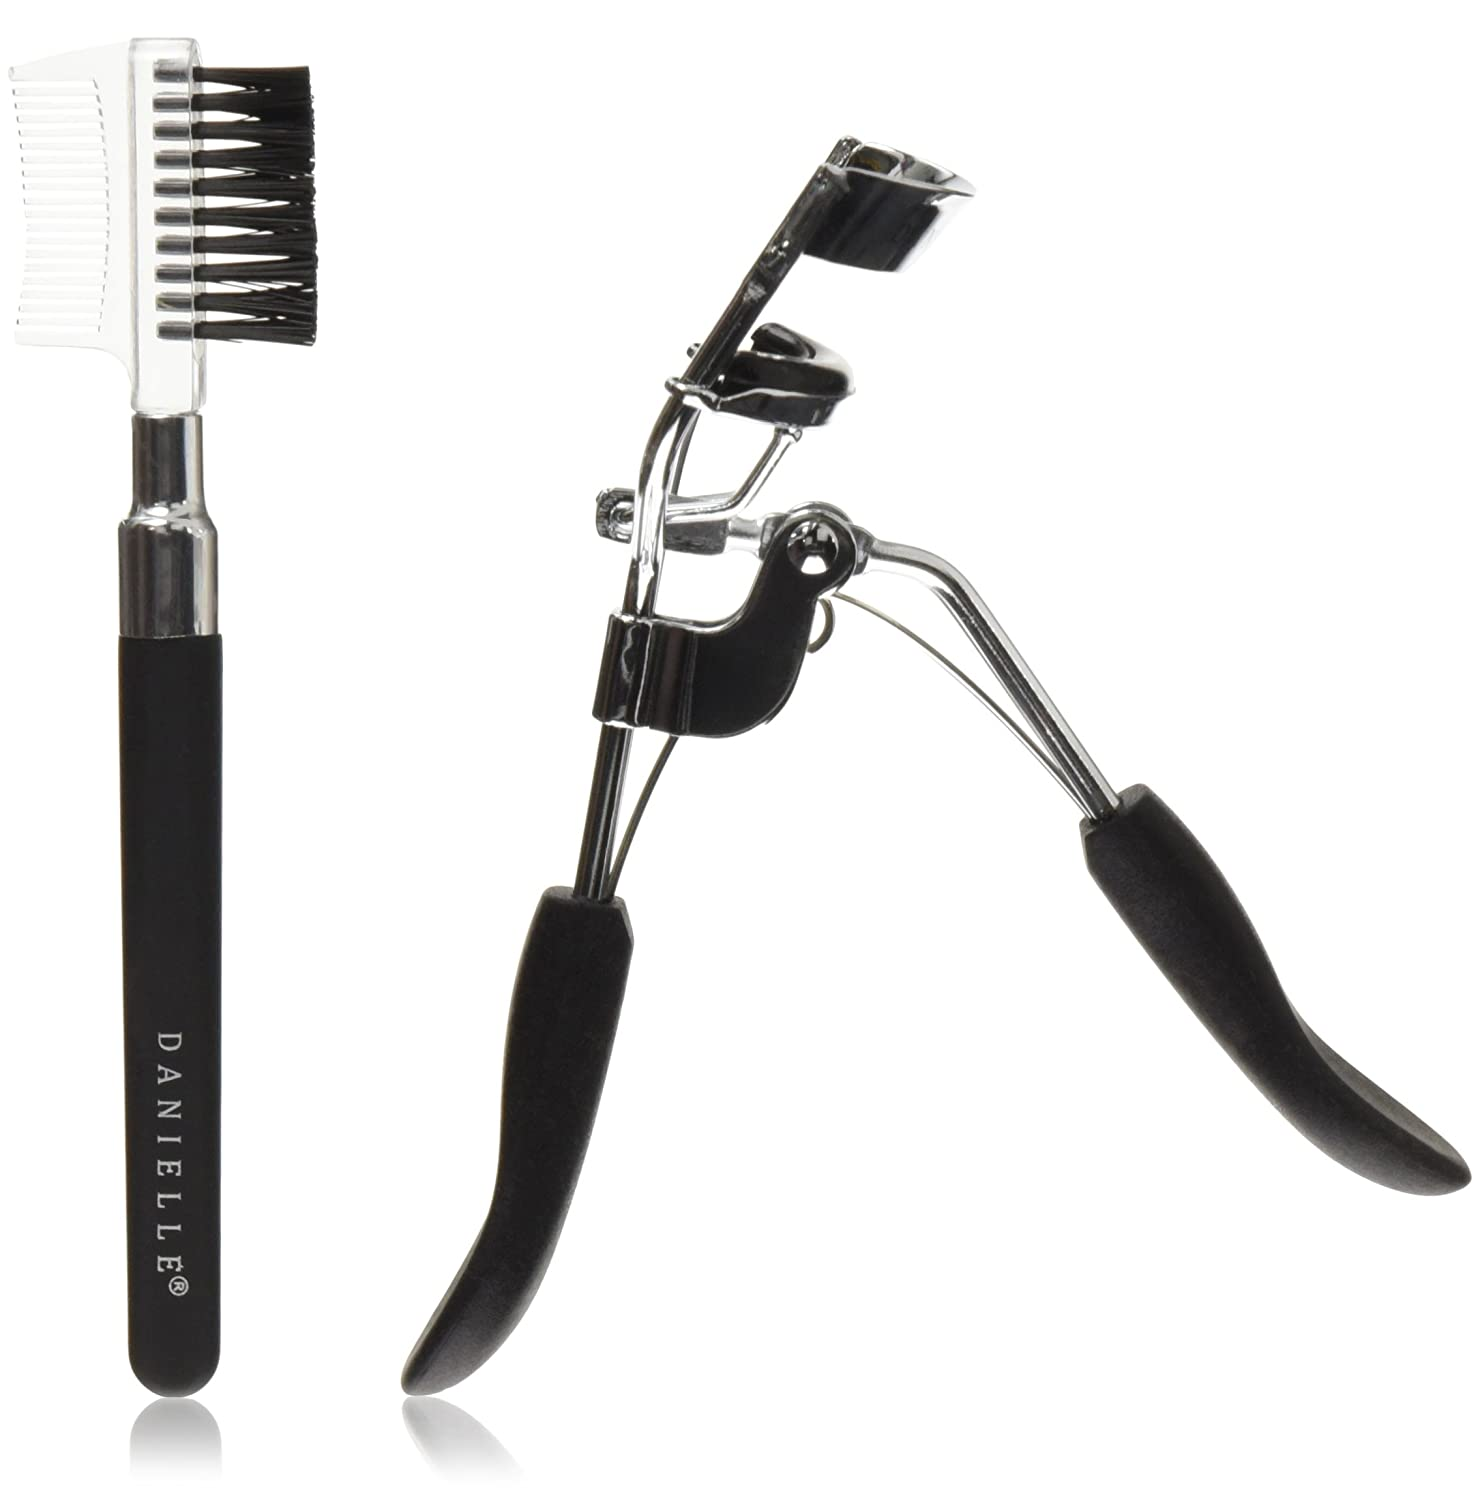 Danielle Creations Soft Touch Stainless Steel Duo Eyelash Curler Brow Brush Set, Black D3530B